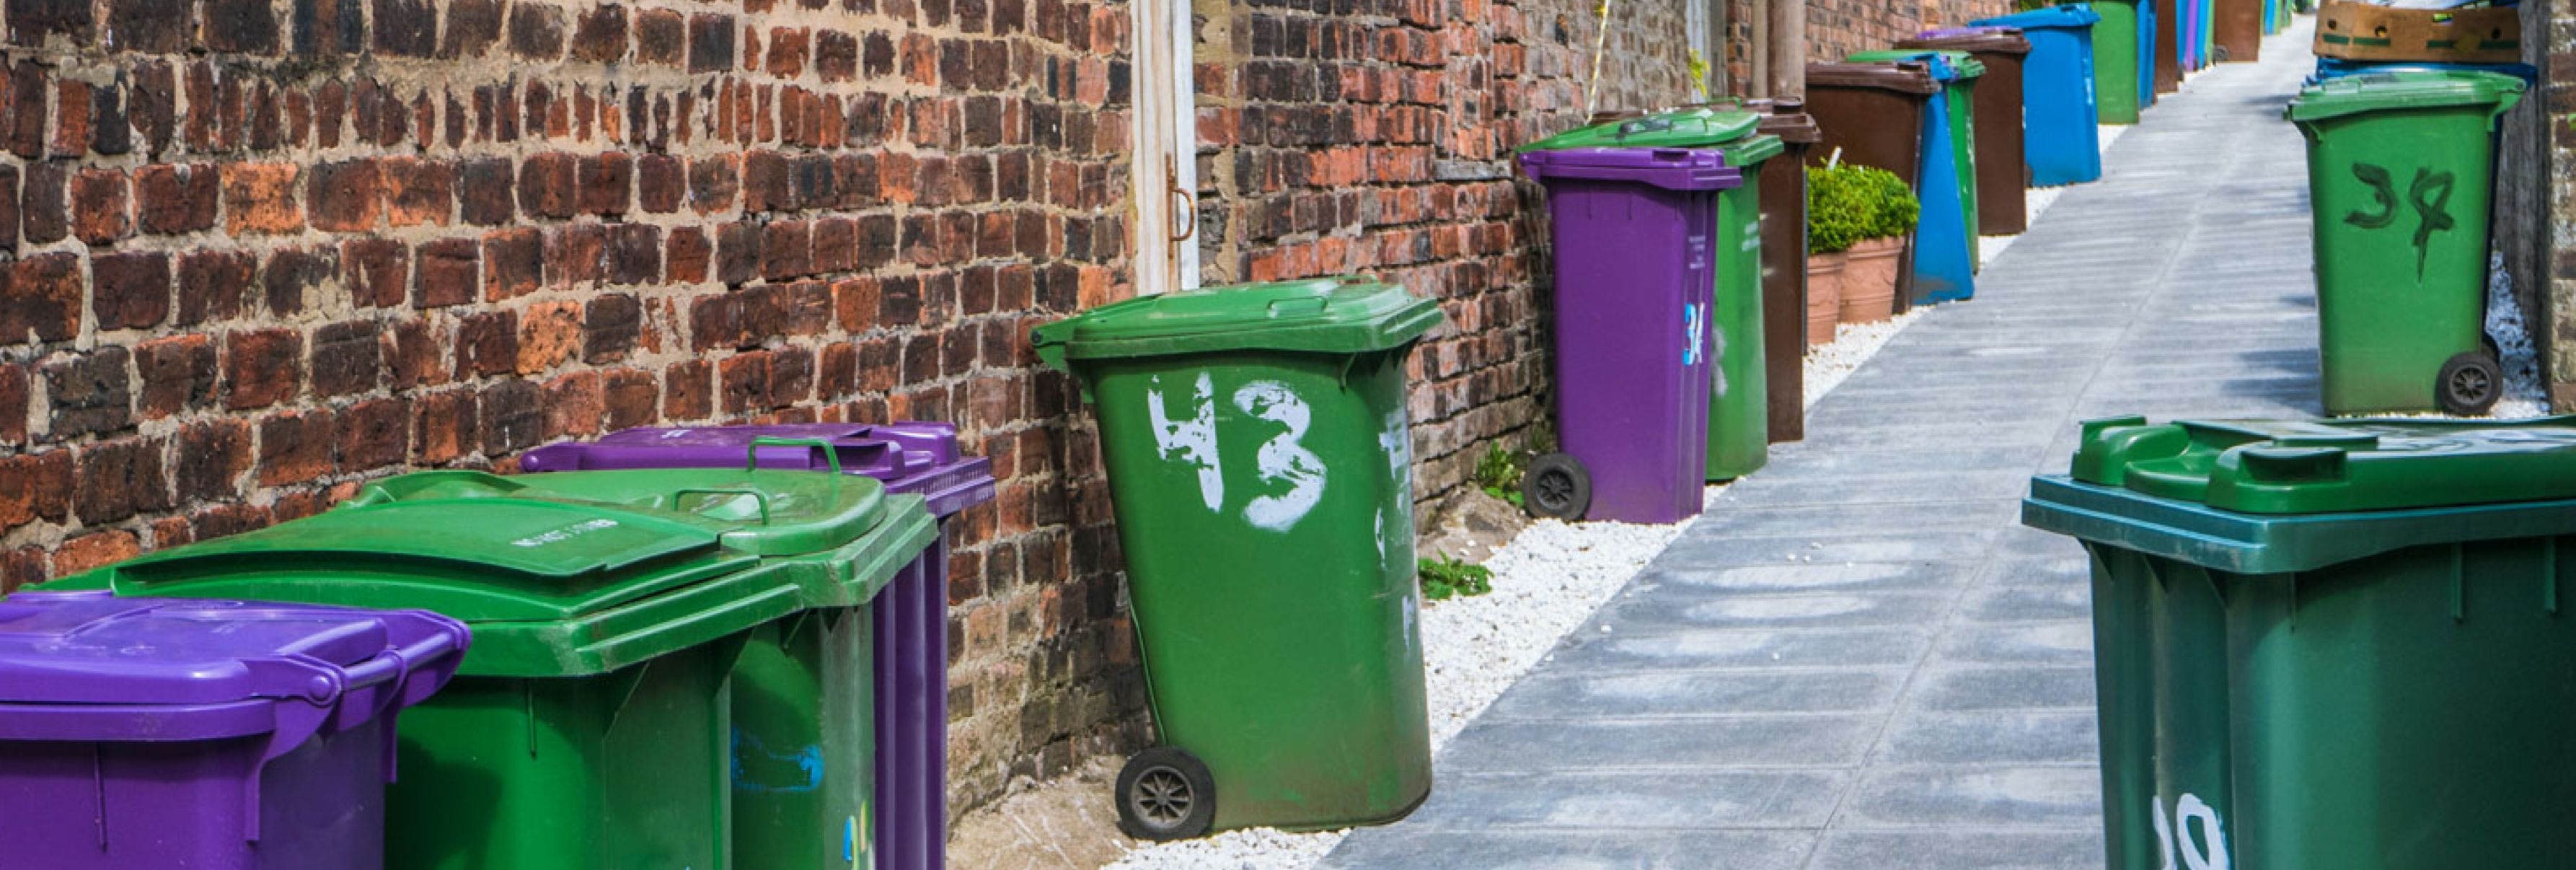 Private Home Wheelie Bin Collections: Your Questions Answered